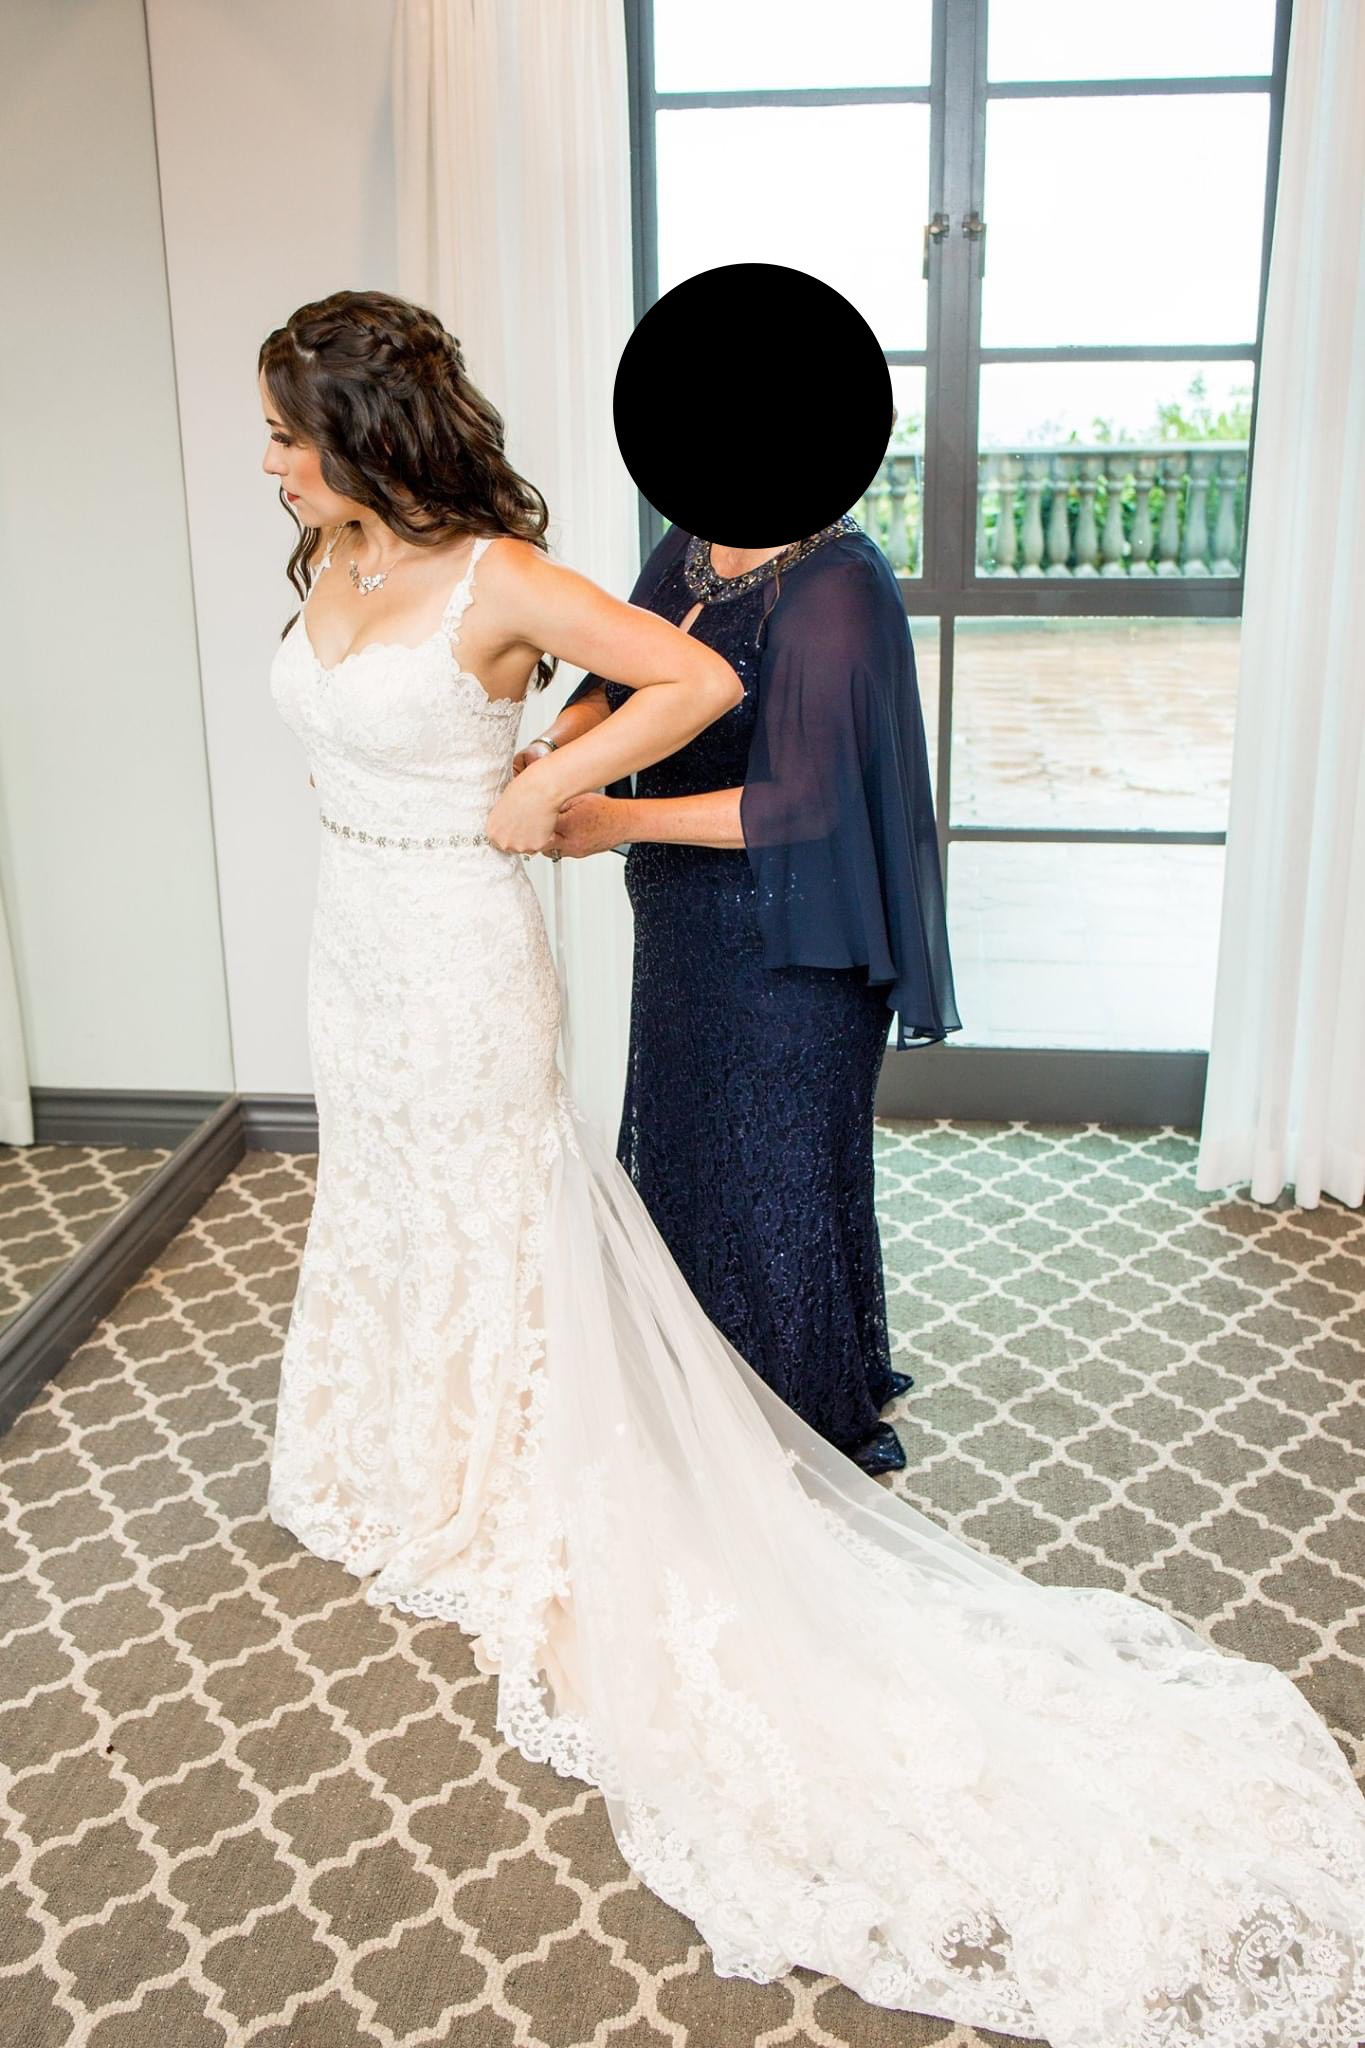 Bhldn Leigh Gown And New Capri Top Preowned Wedding Dress Save 70 Stillwhite,Ball Gown Most Popular Wedding Dresses